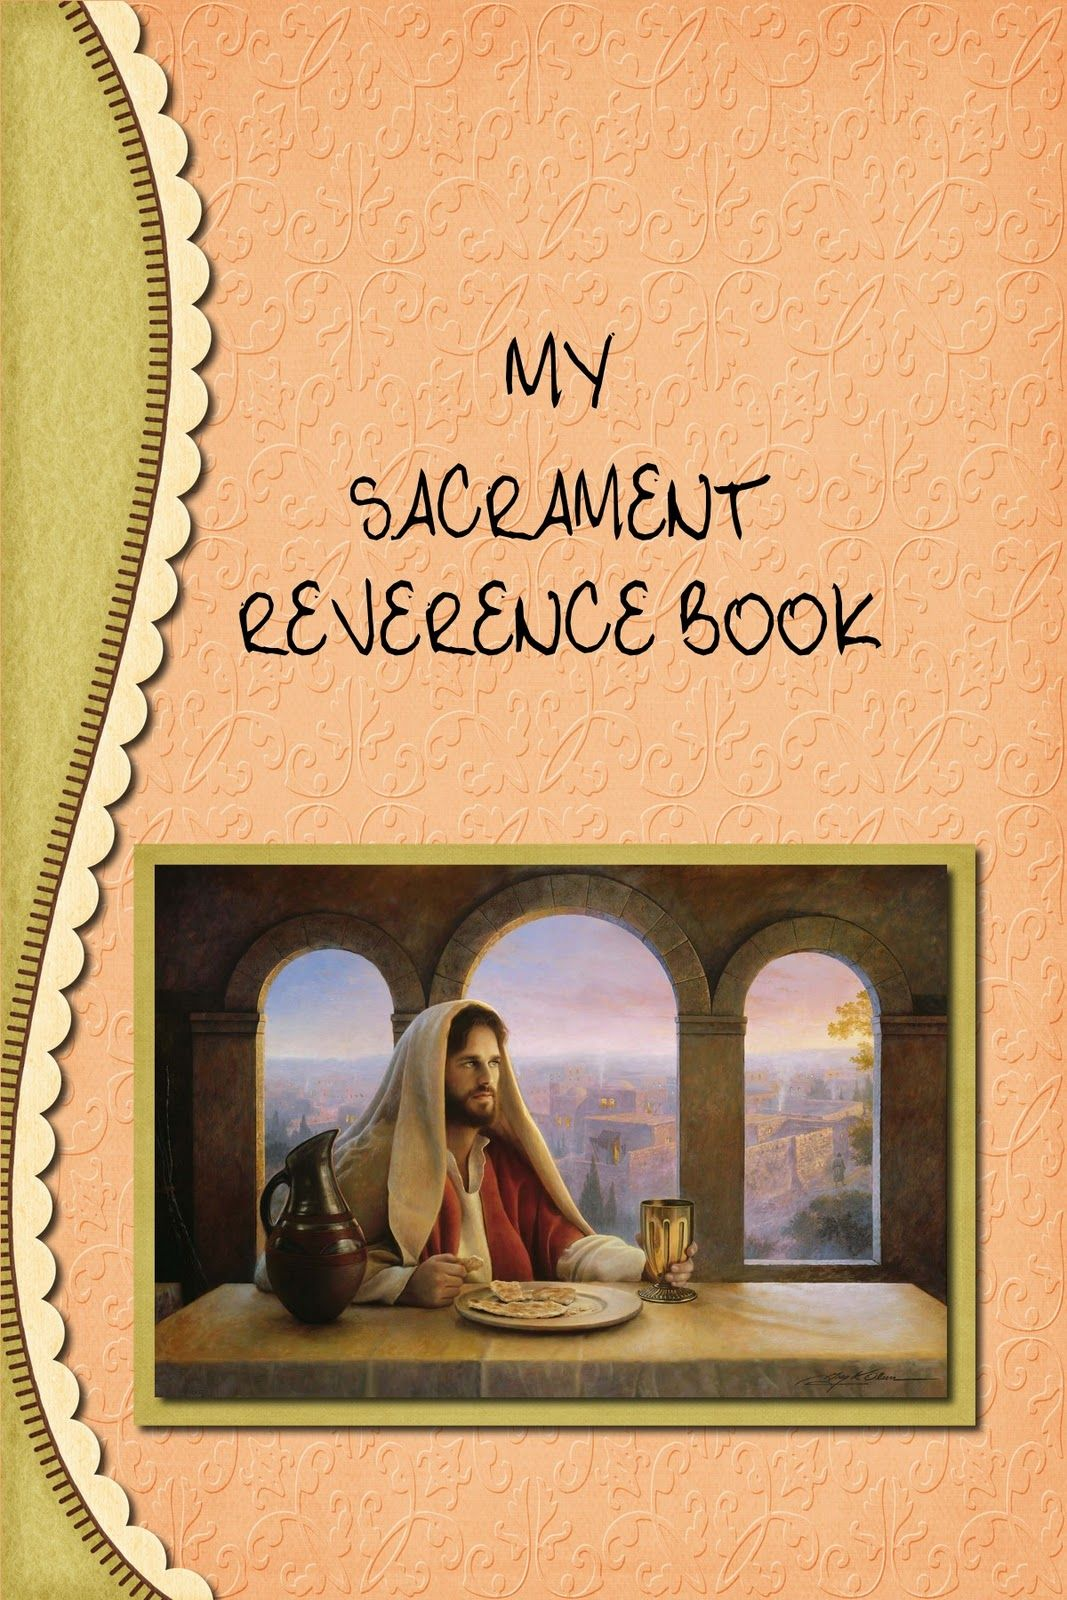 My Sacrament Book Free 27page Download! Links To A Great Site For 14